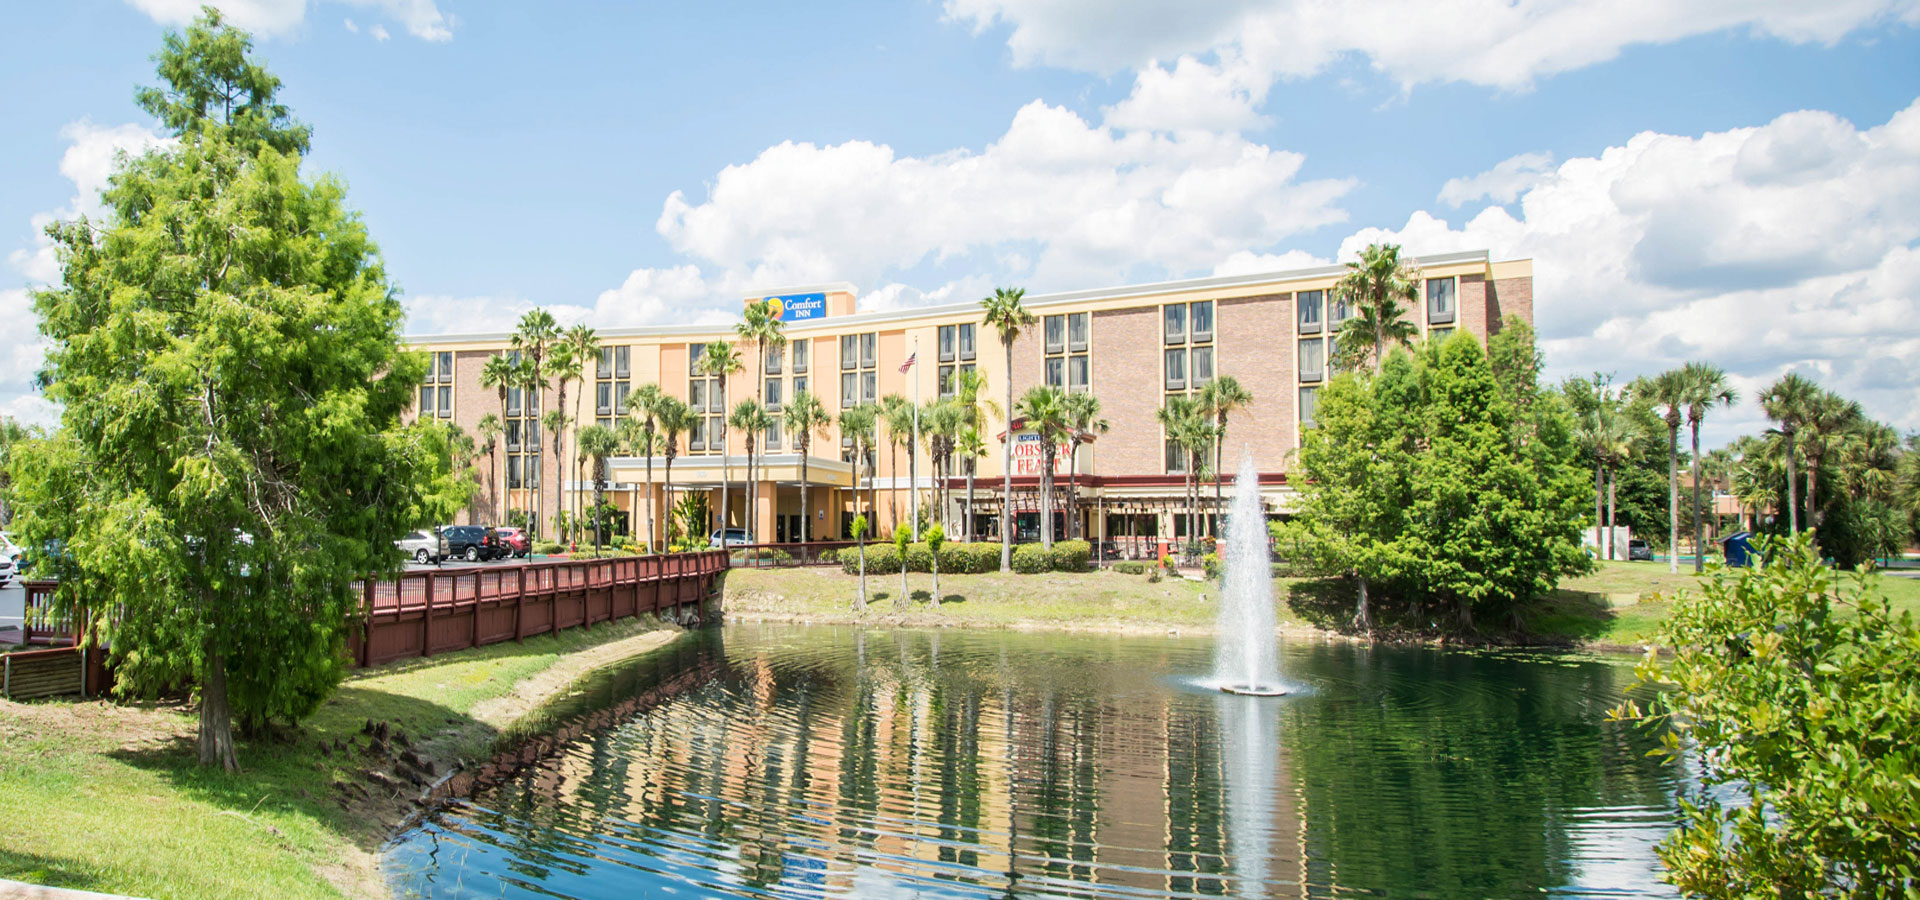 Best Hotel In Disney World Orlando